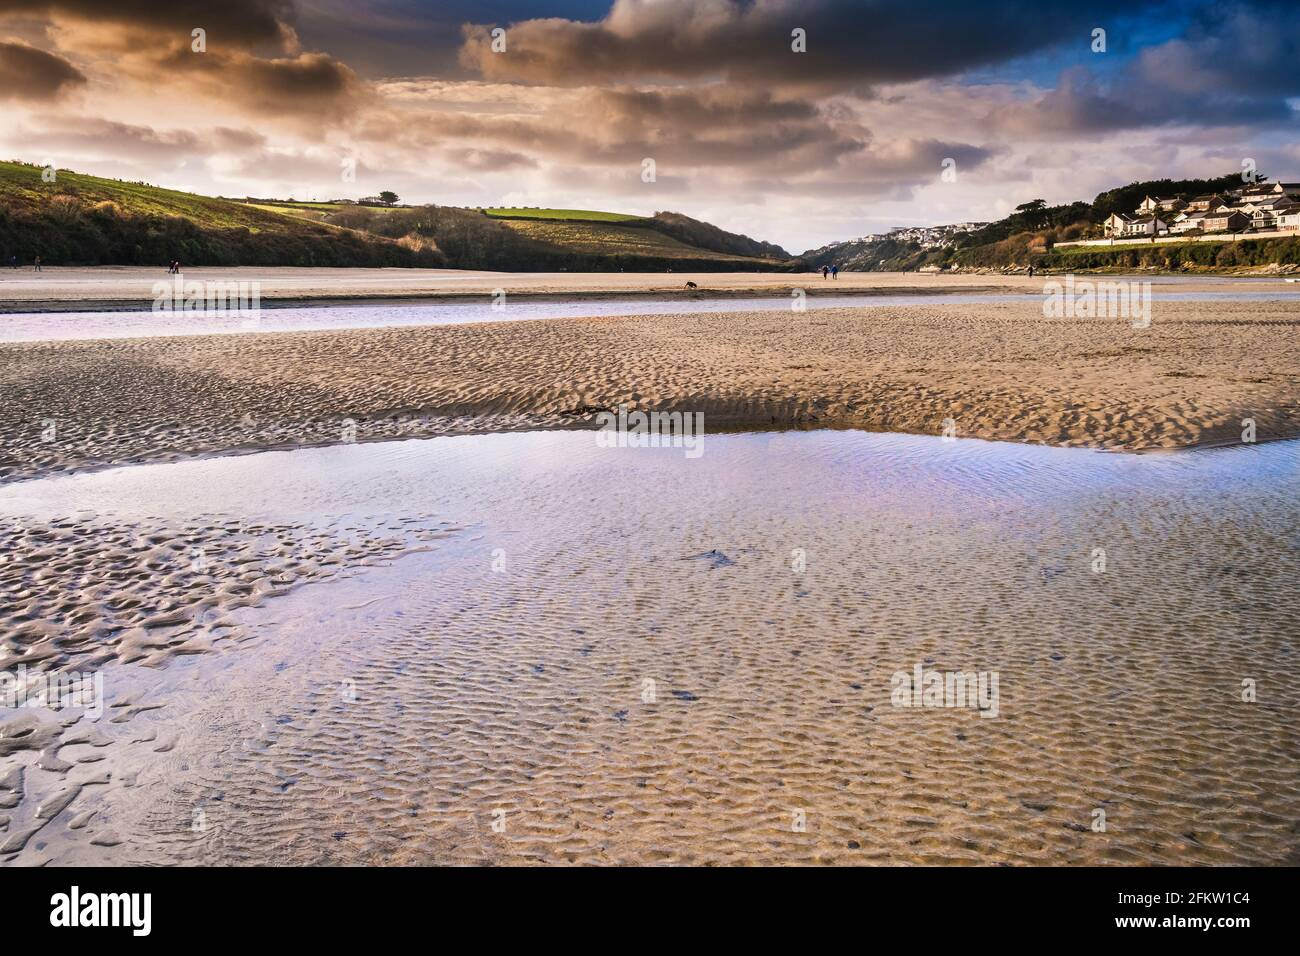 The Gannel River at low tide in Newquay in Cornwall. Stock Photo